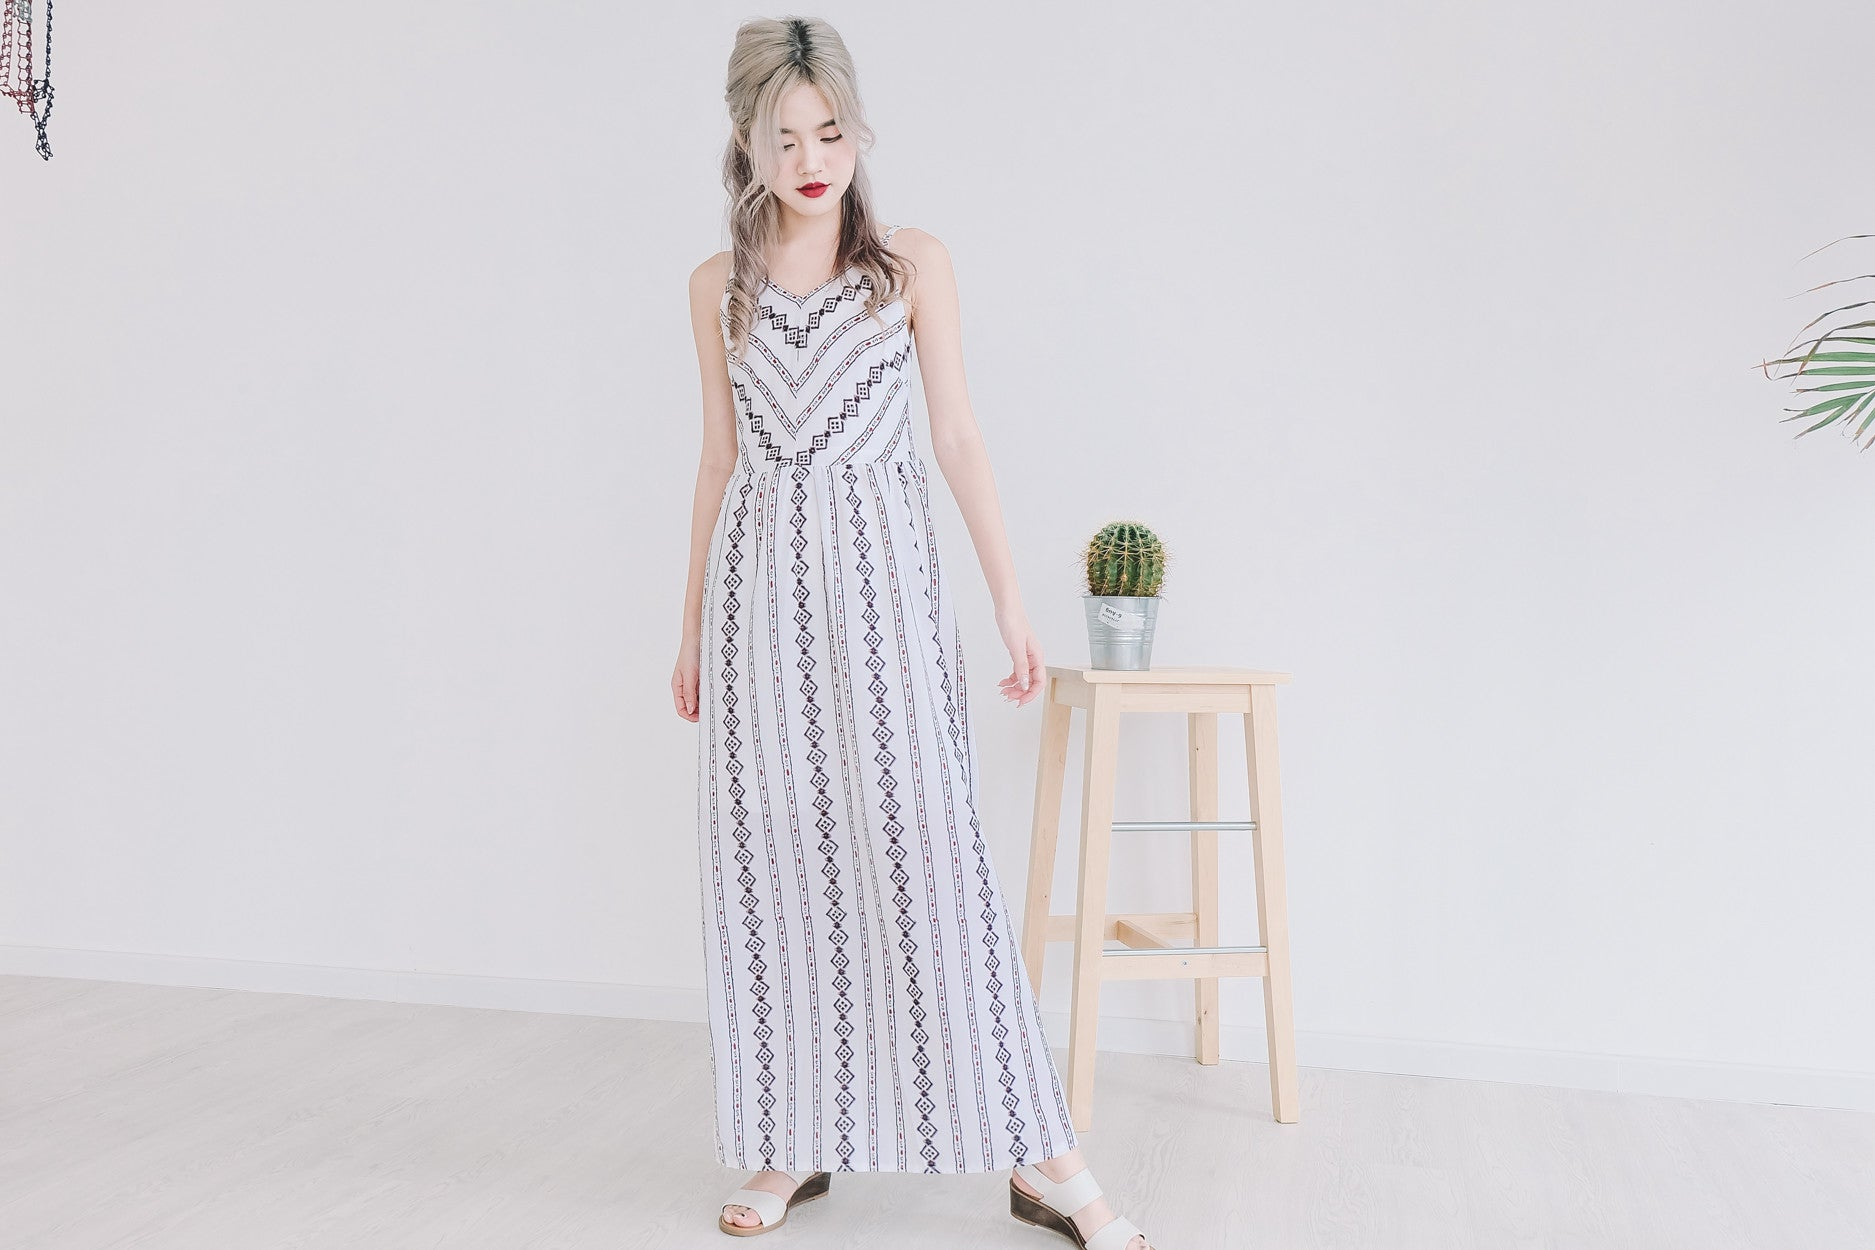 Aztec Print Maxi Dress in White